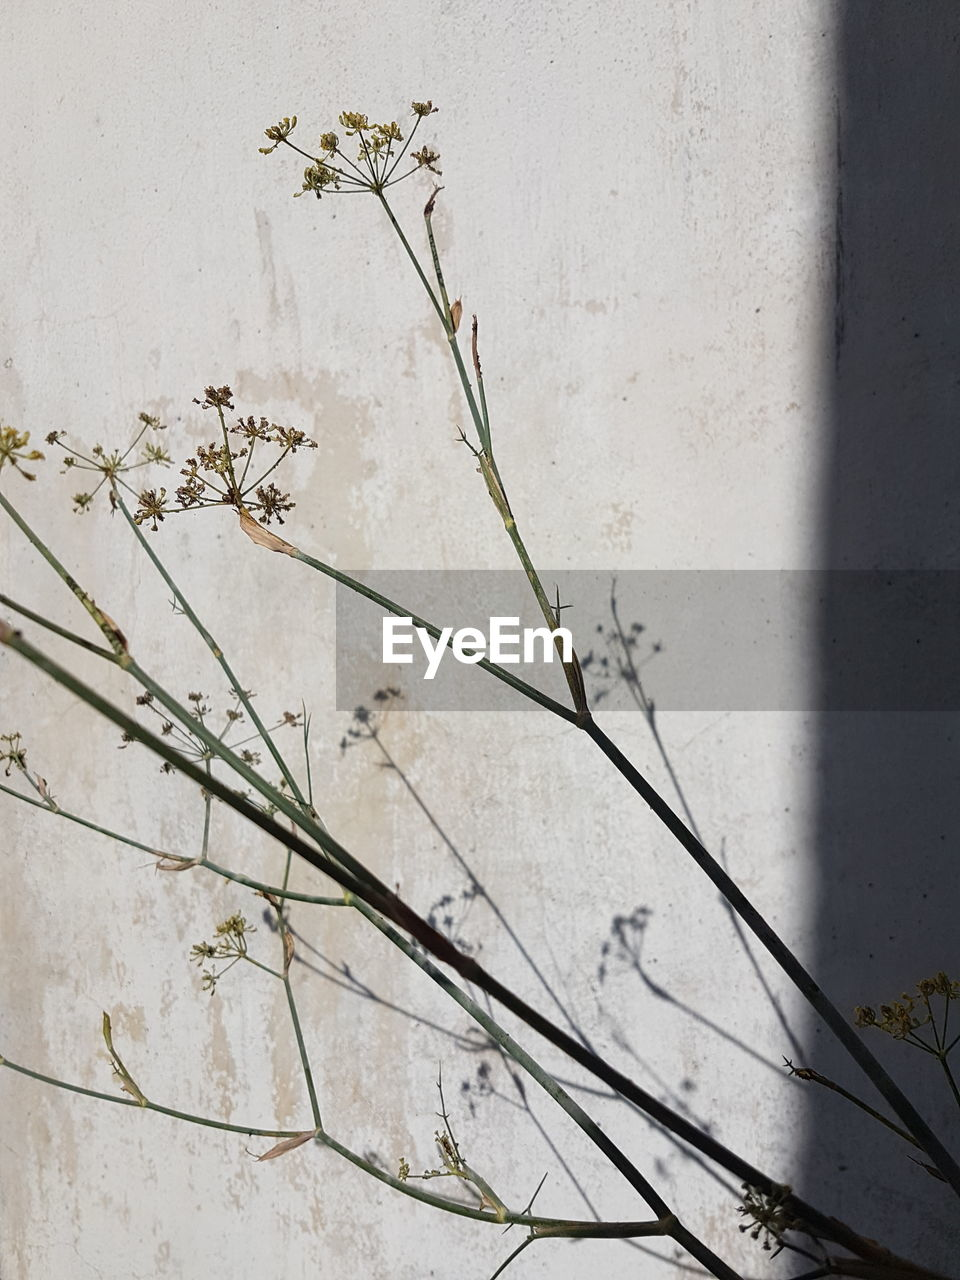 no people, growth, plant, day, nature, outdoors, leaf, close-up, architecture, flower, fragility, freshness